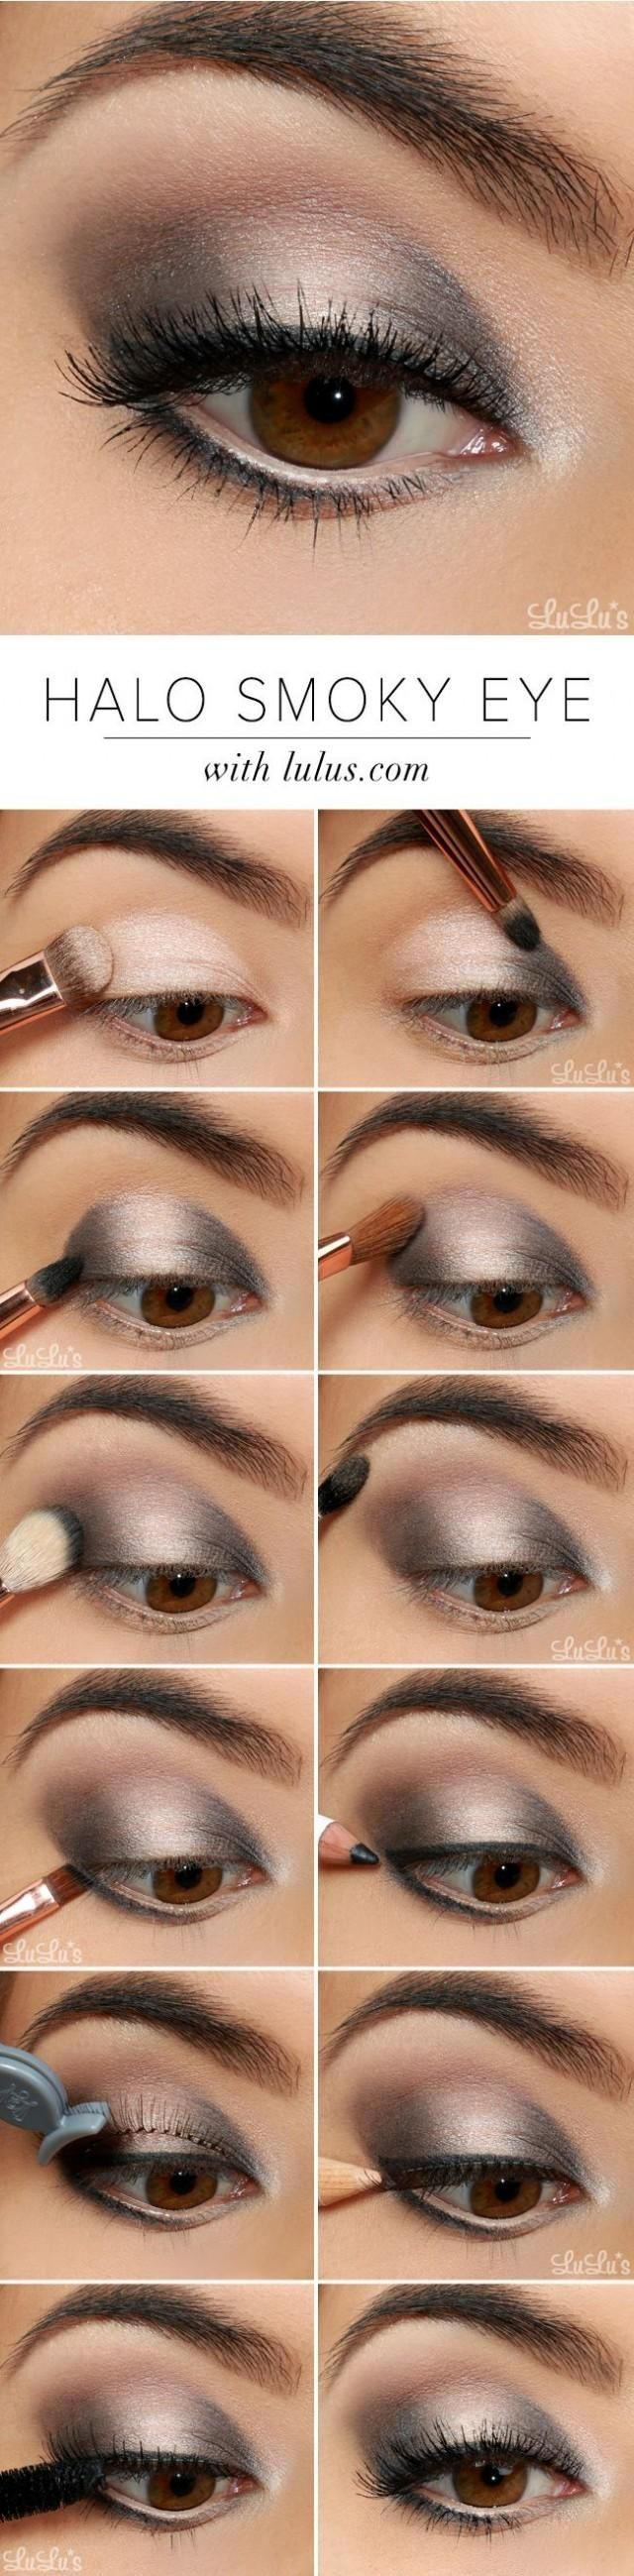 Halo Smokey Eye Shadow Tutorial! Our full tutorial is on the blog!